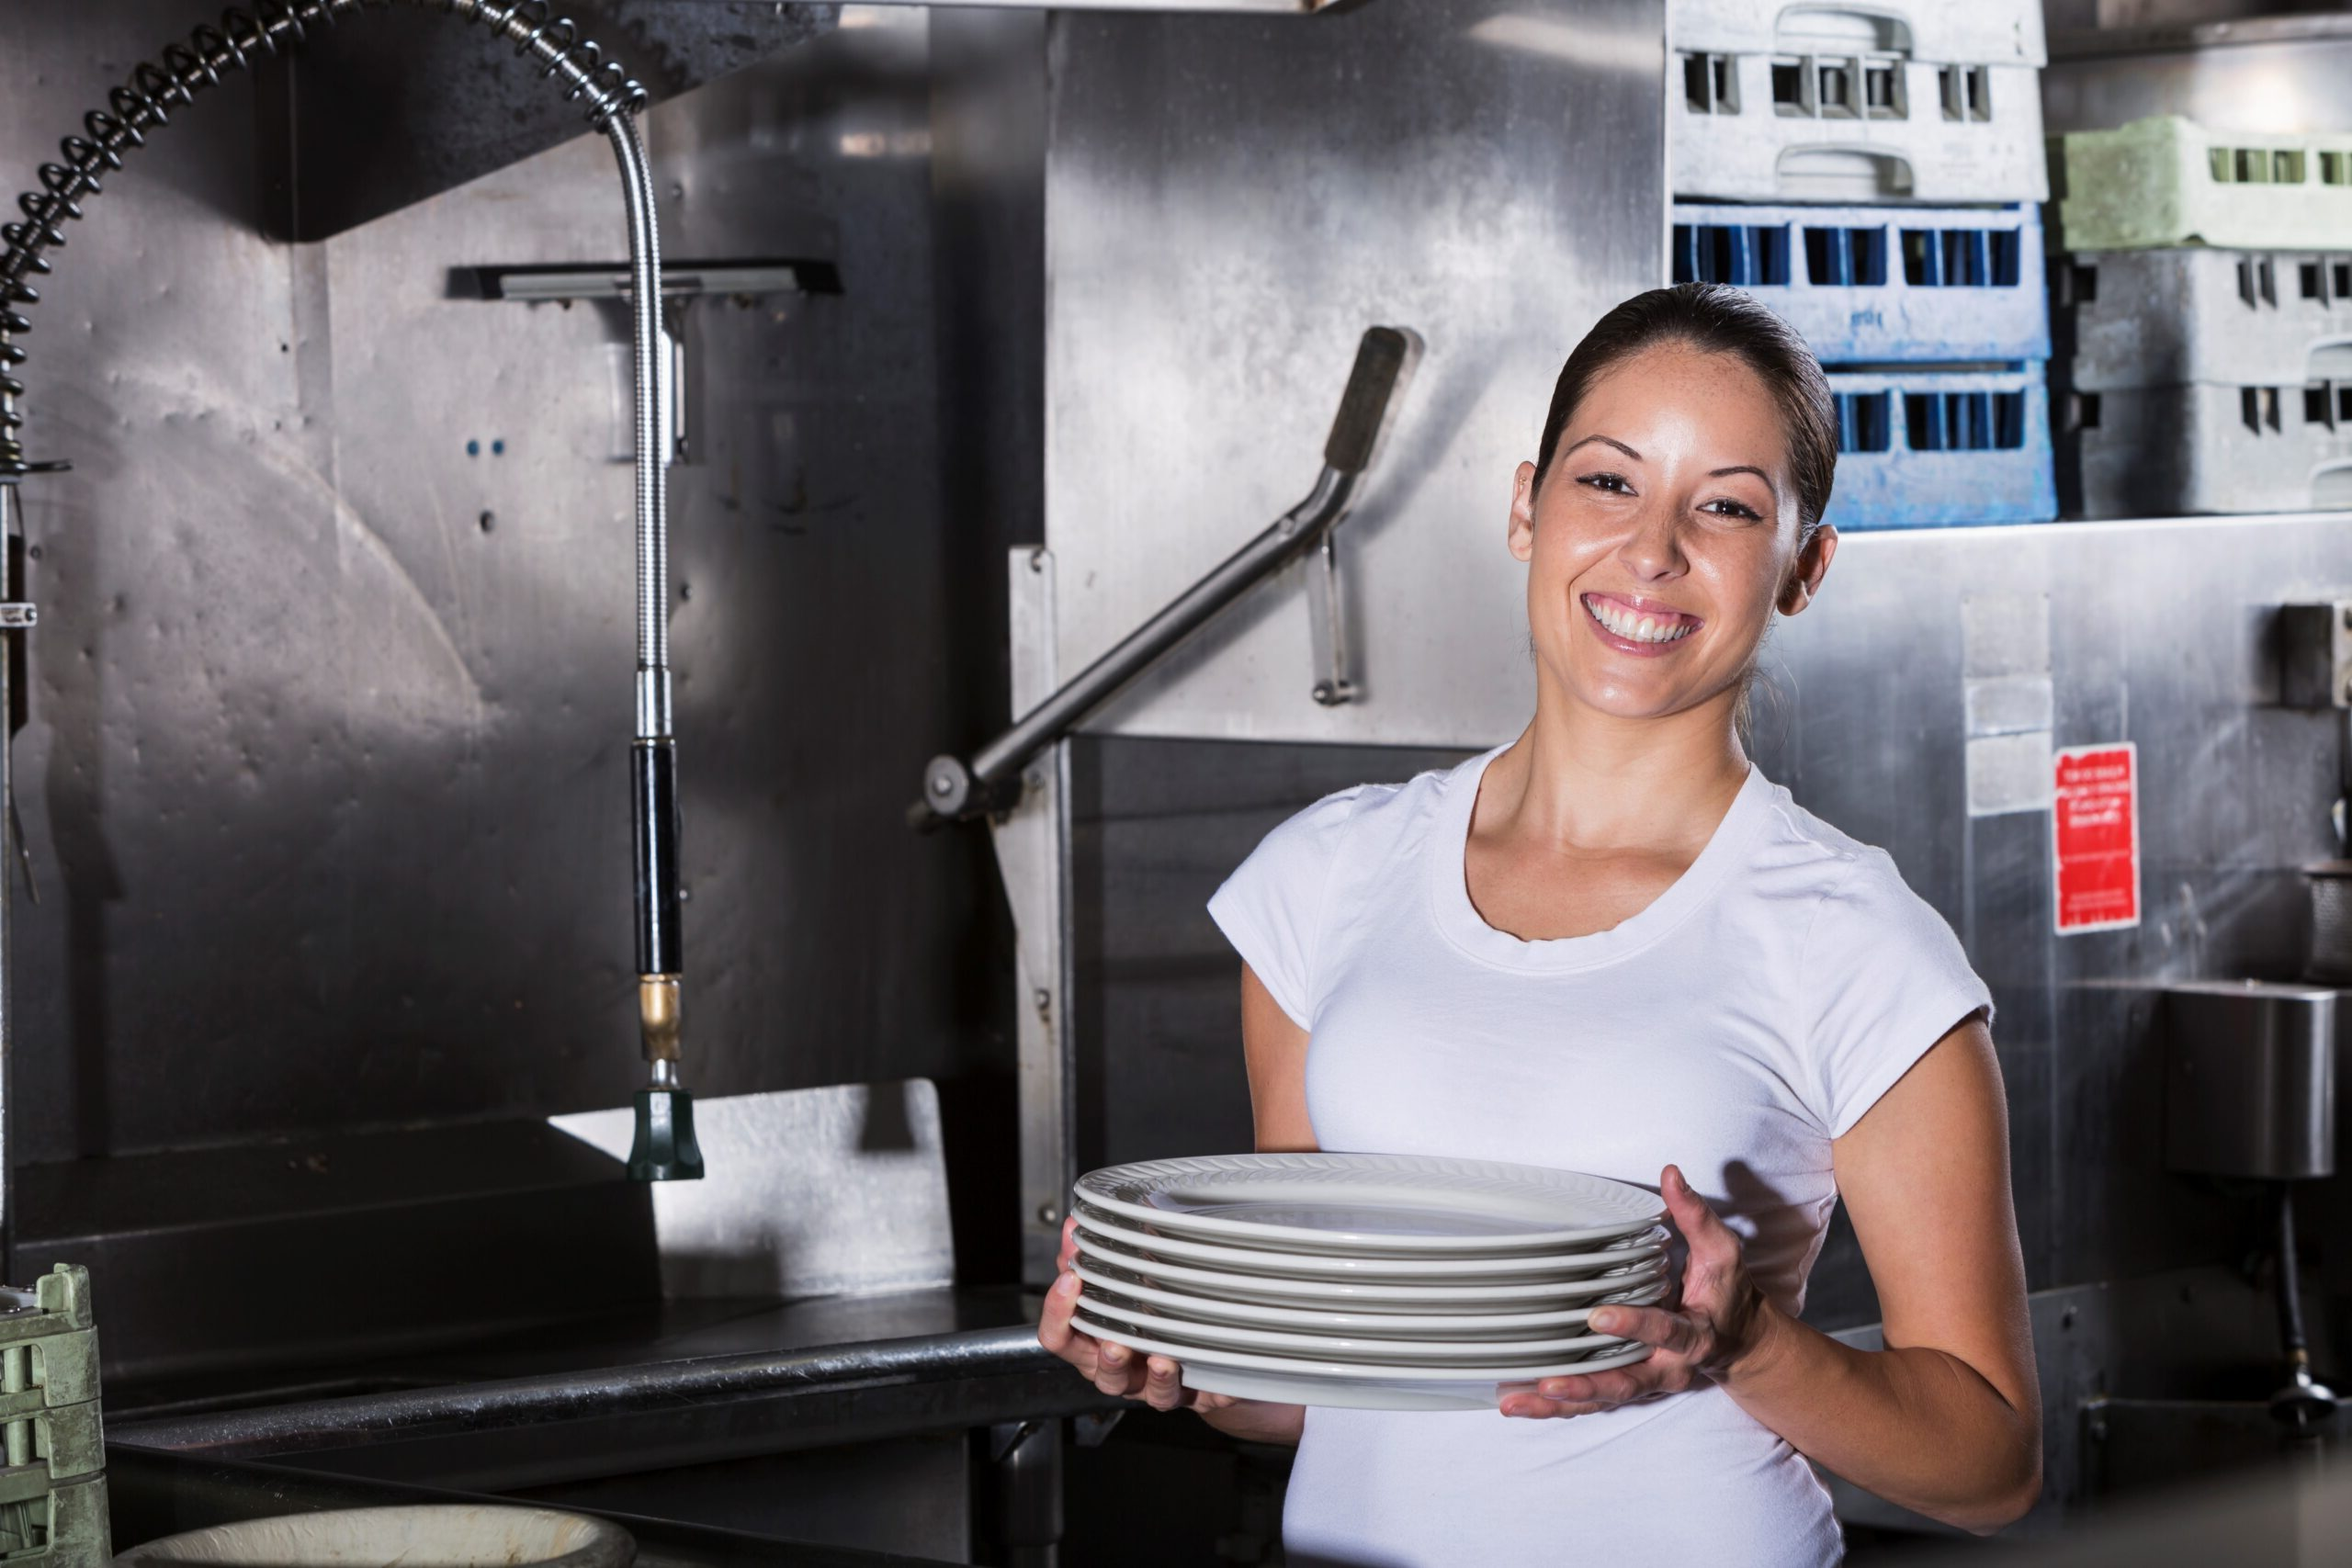 Help your restaurant save hot water costs!